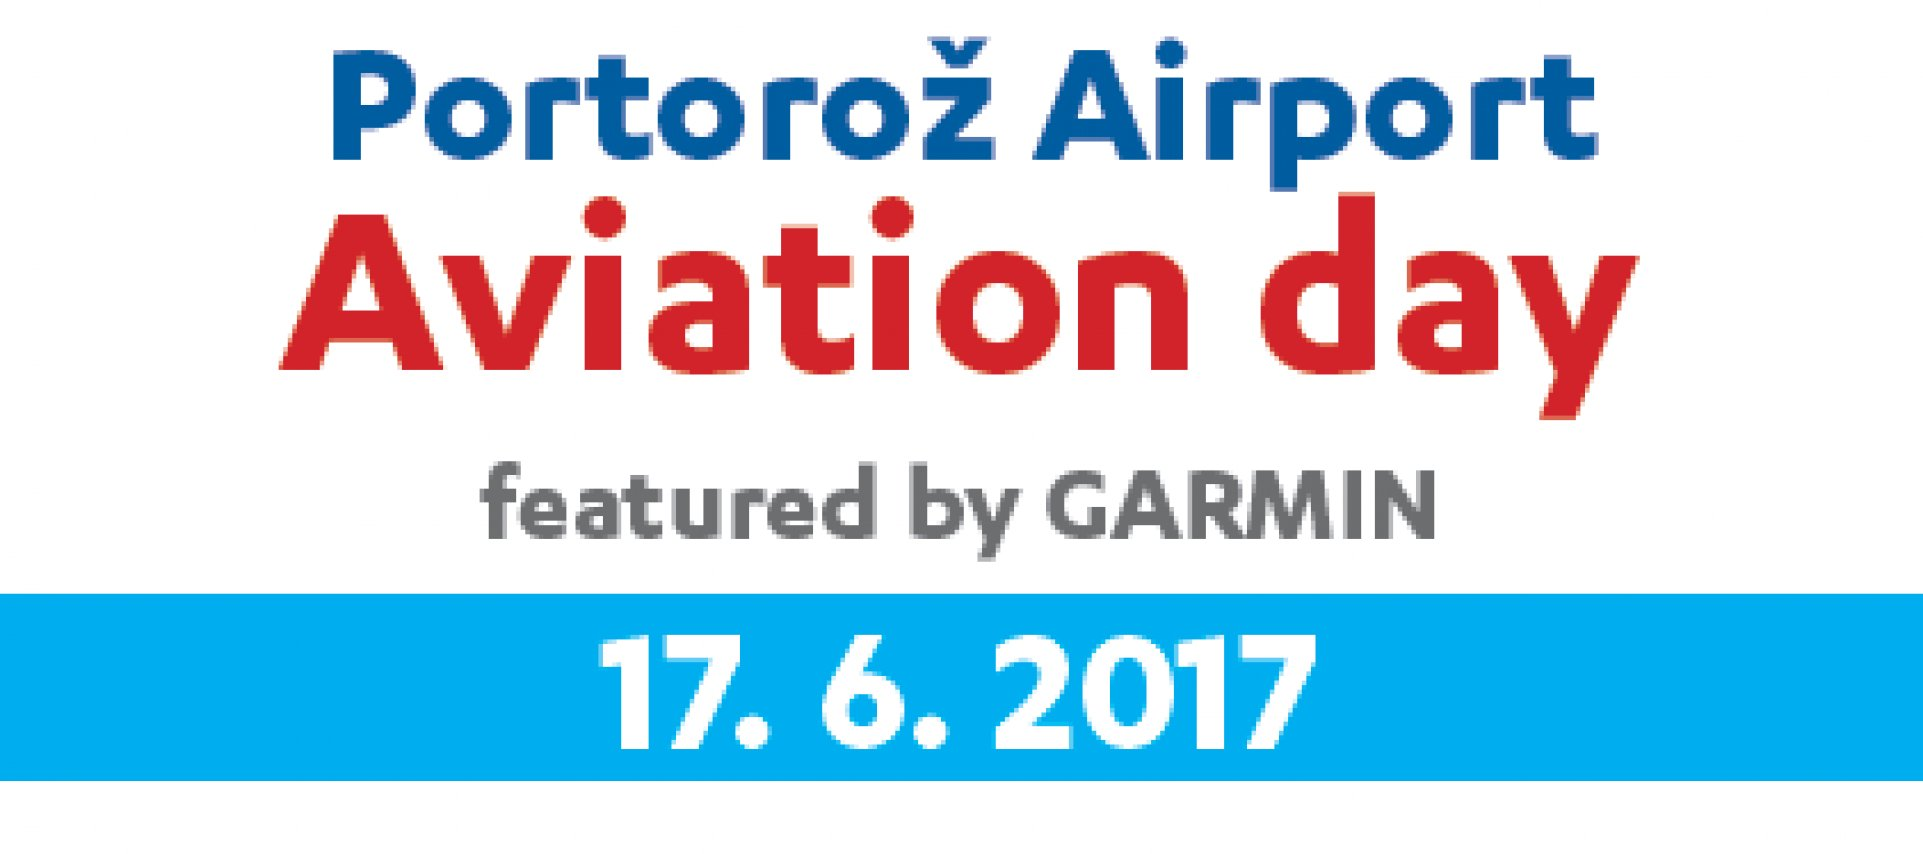 PORTOROŽ AIRPORT AVIATION DAY featured by GARMIN